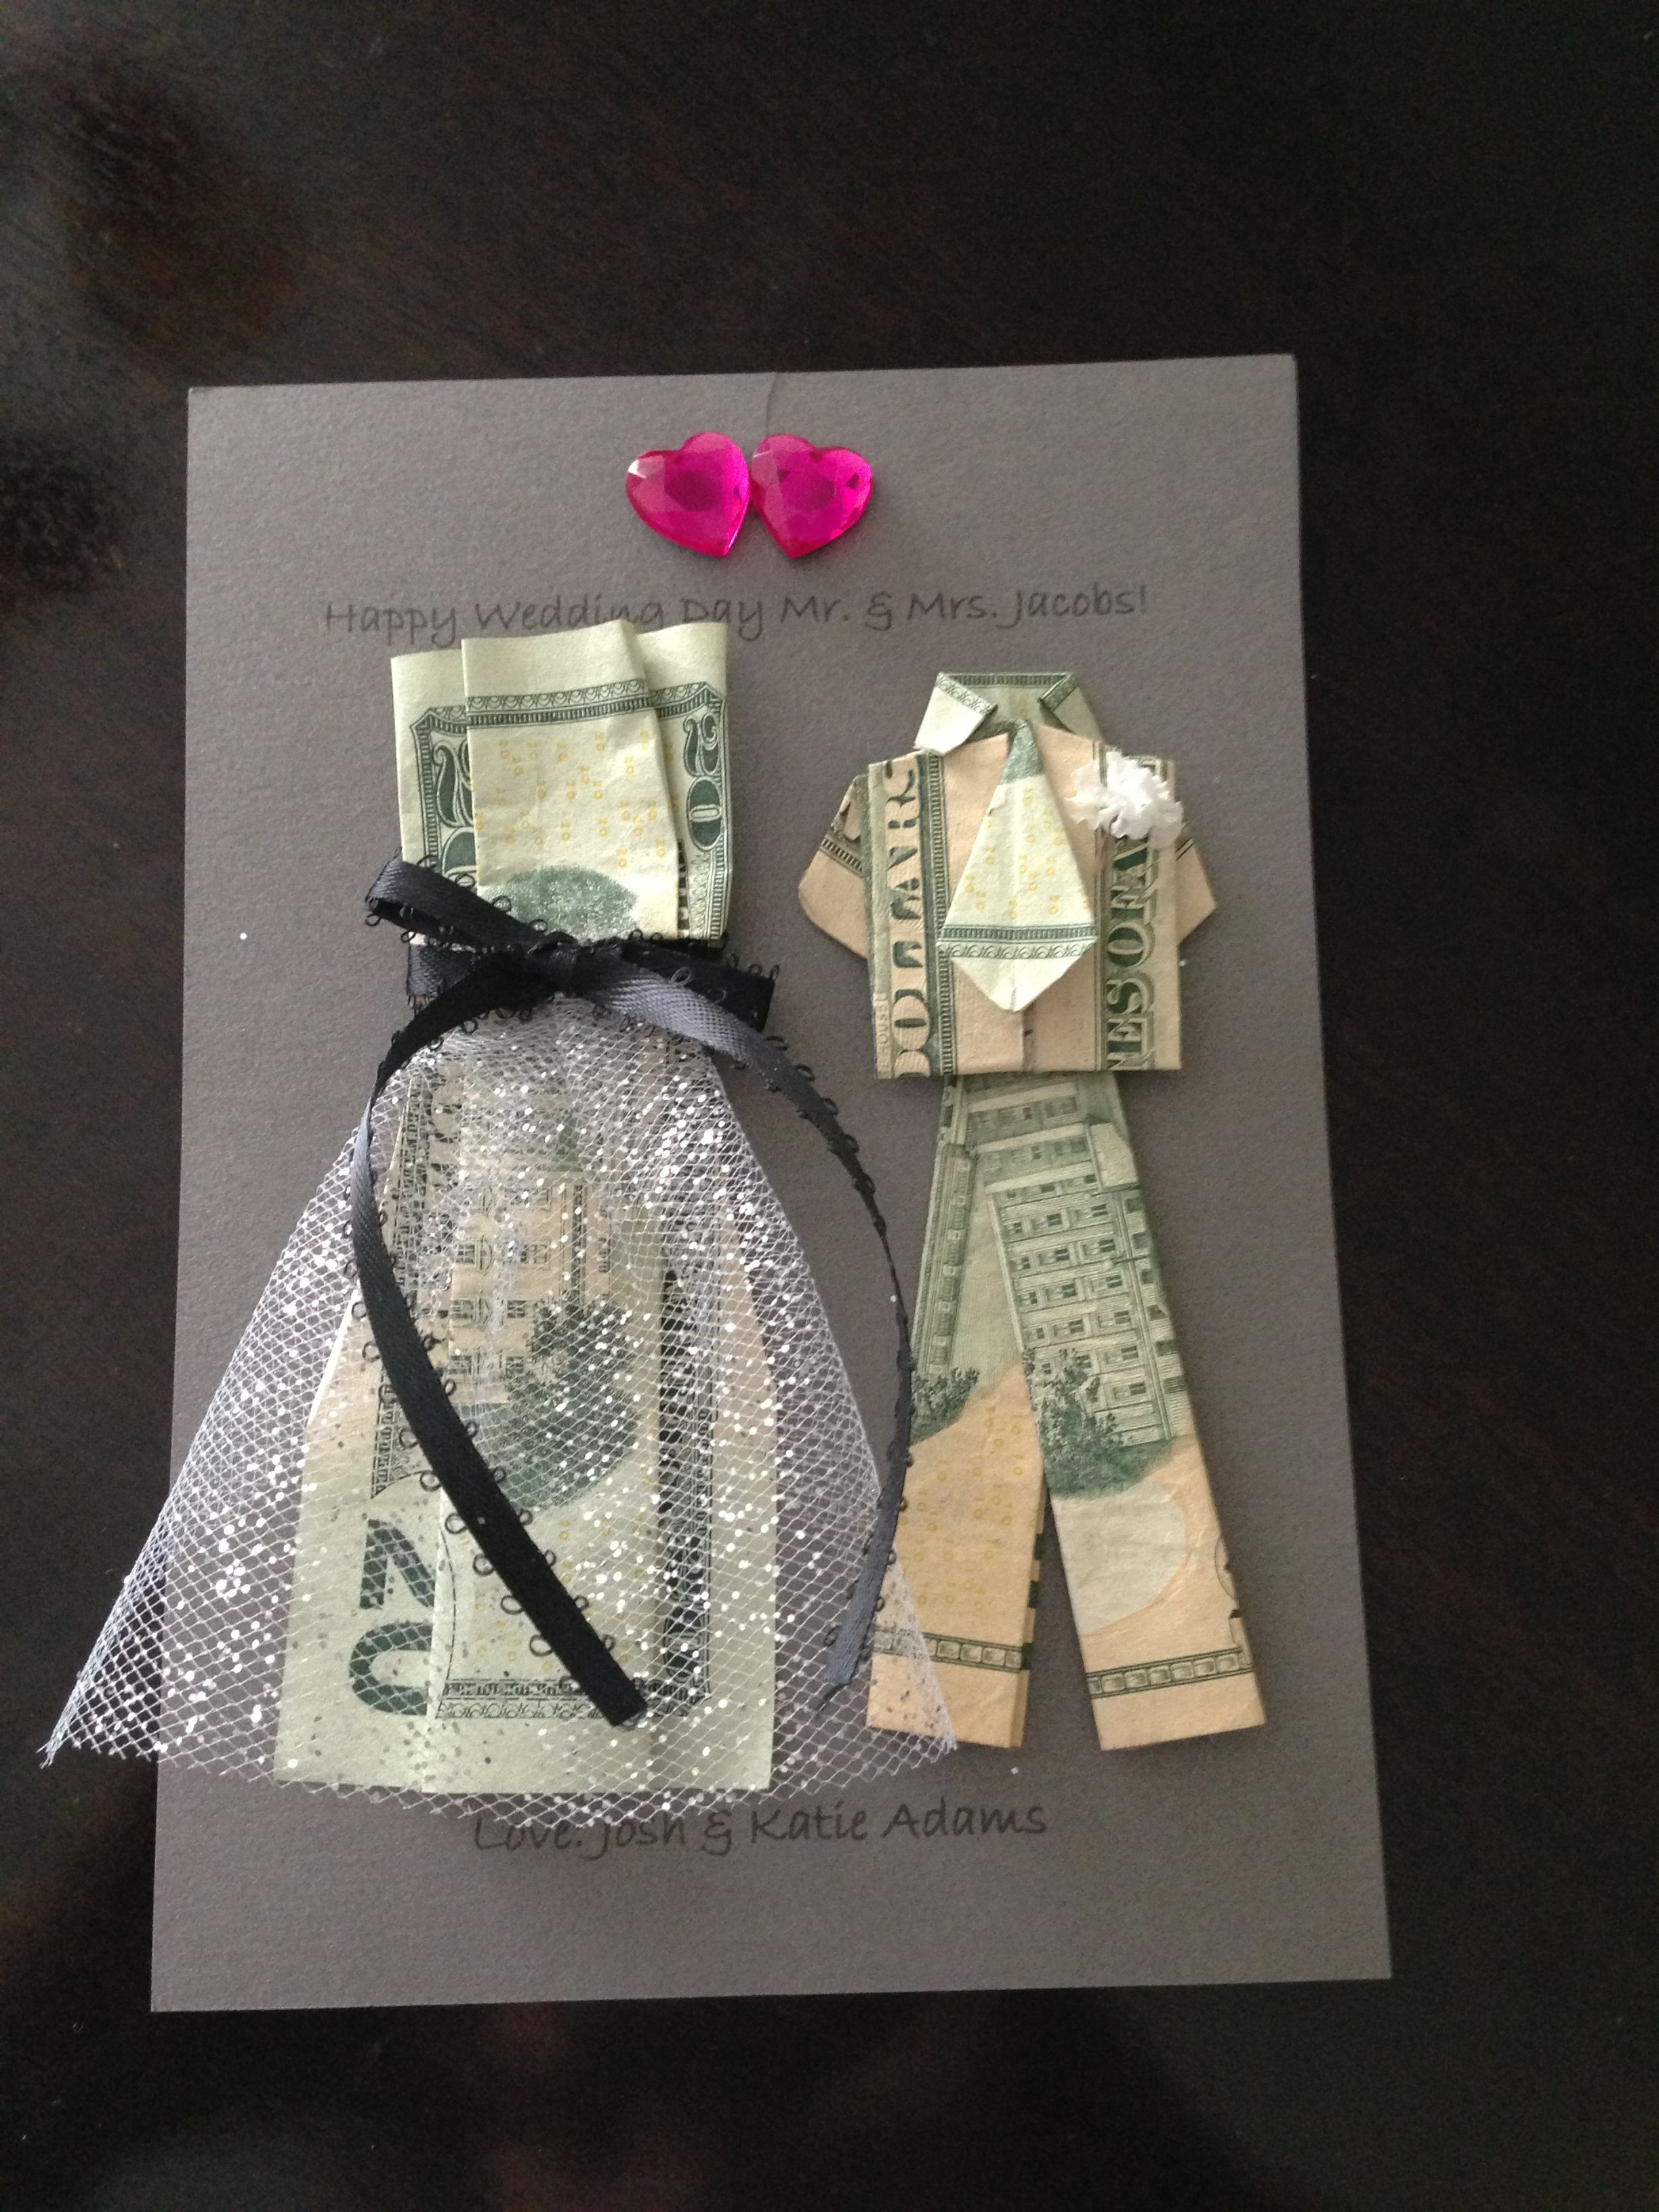 Best ideas about Ideas For Wedding Gift . Save or Pin Wedding Money Gifts on Pinterest Now.